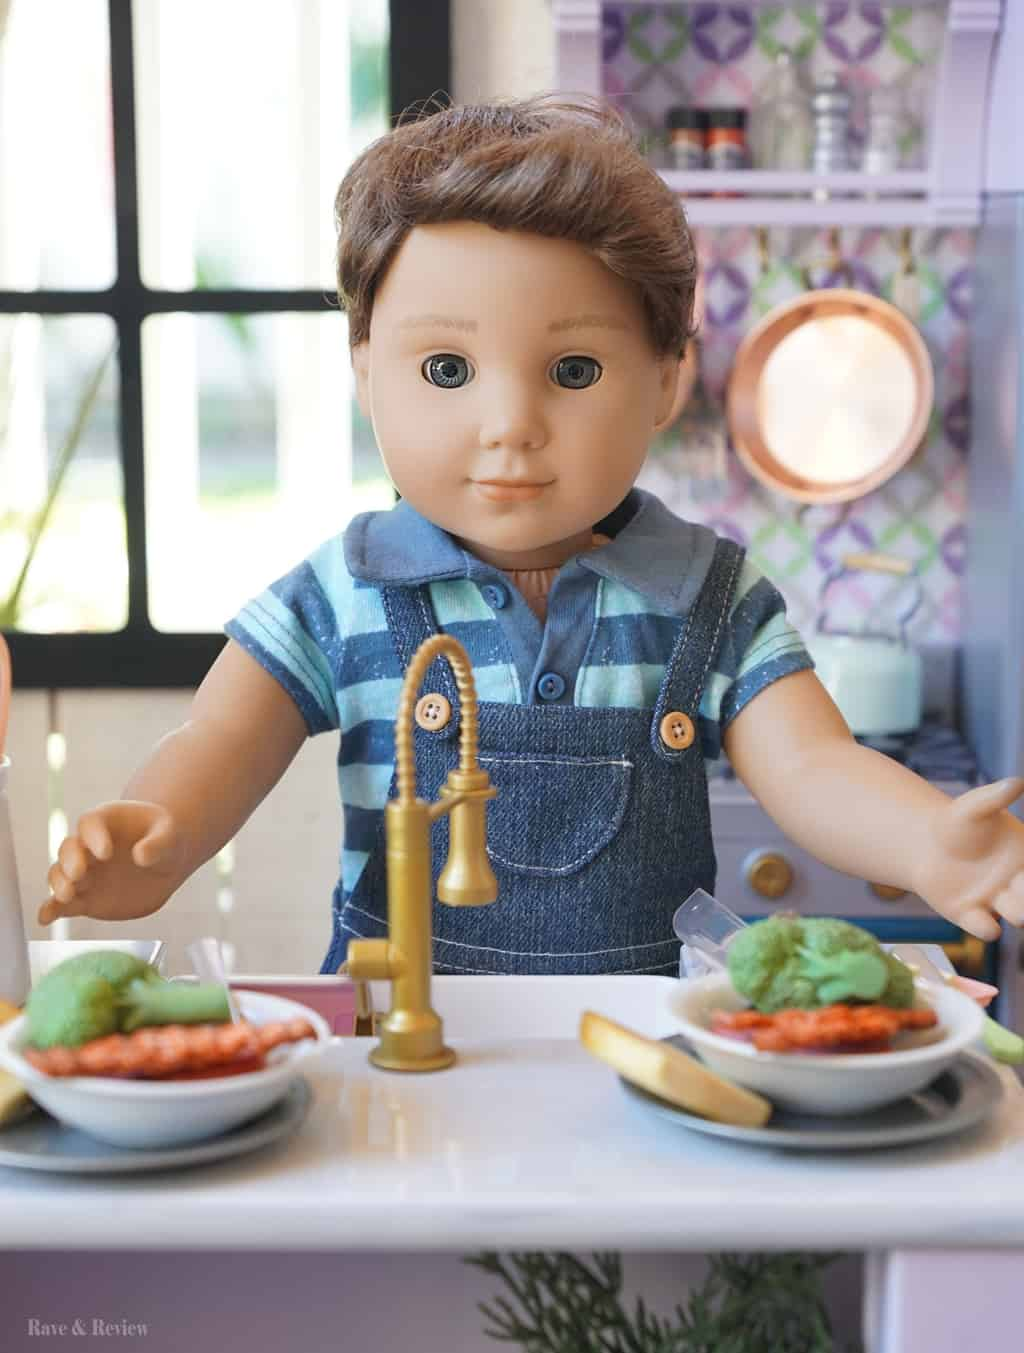 American Girl boy doll in kitchen